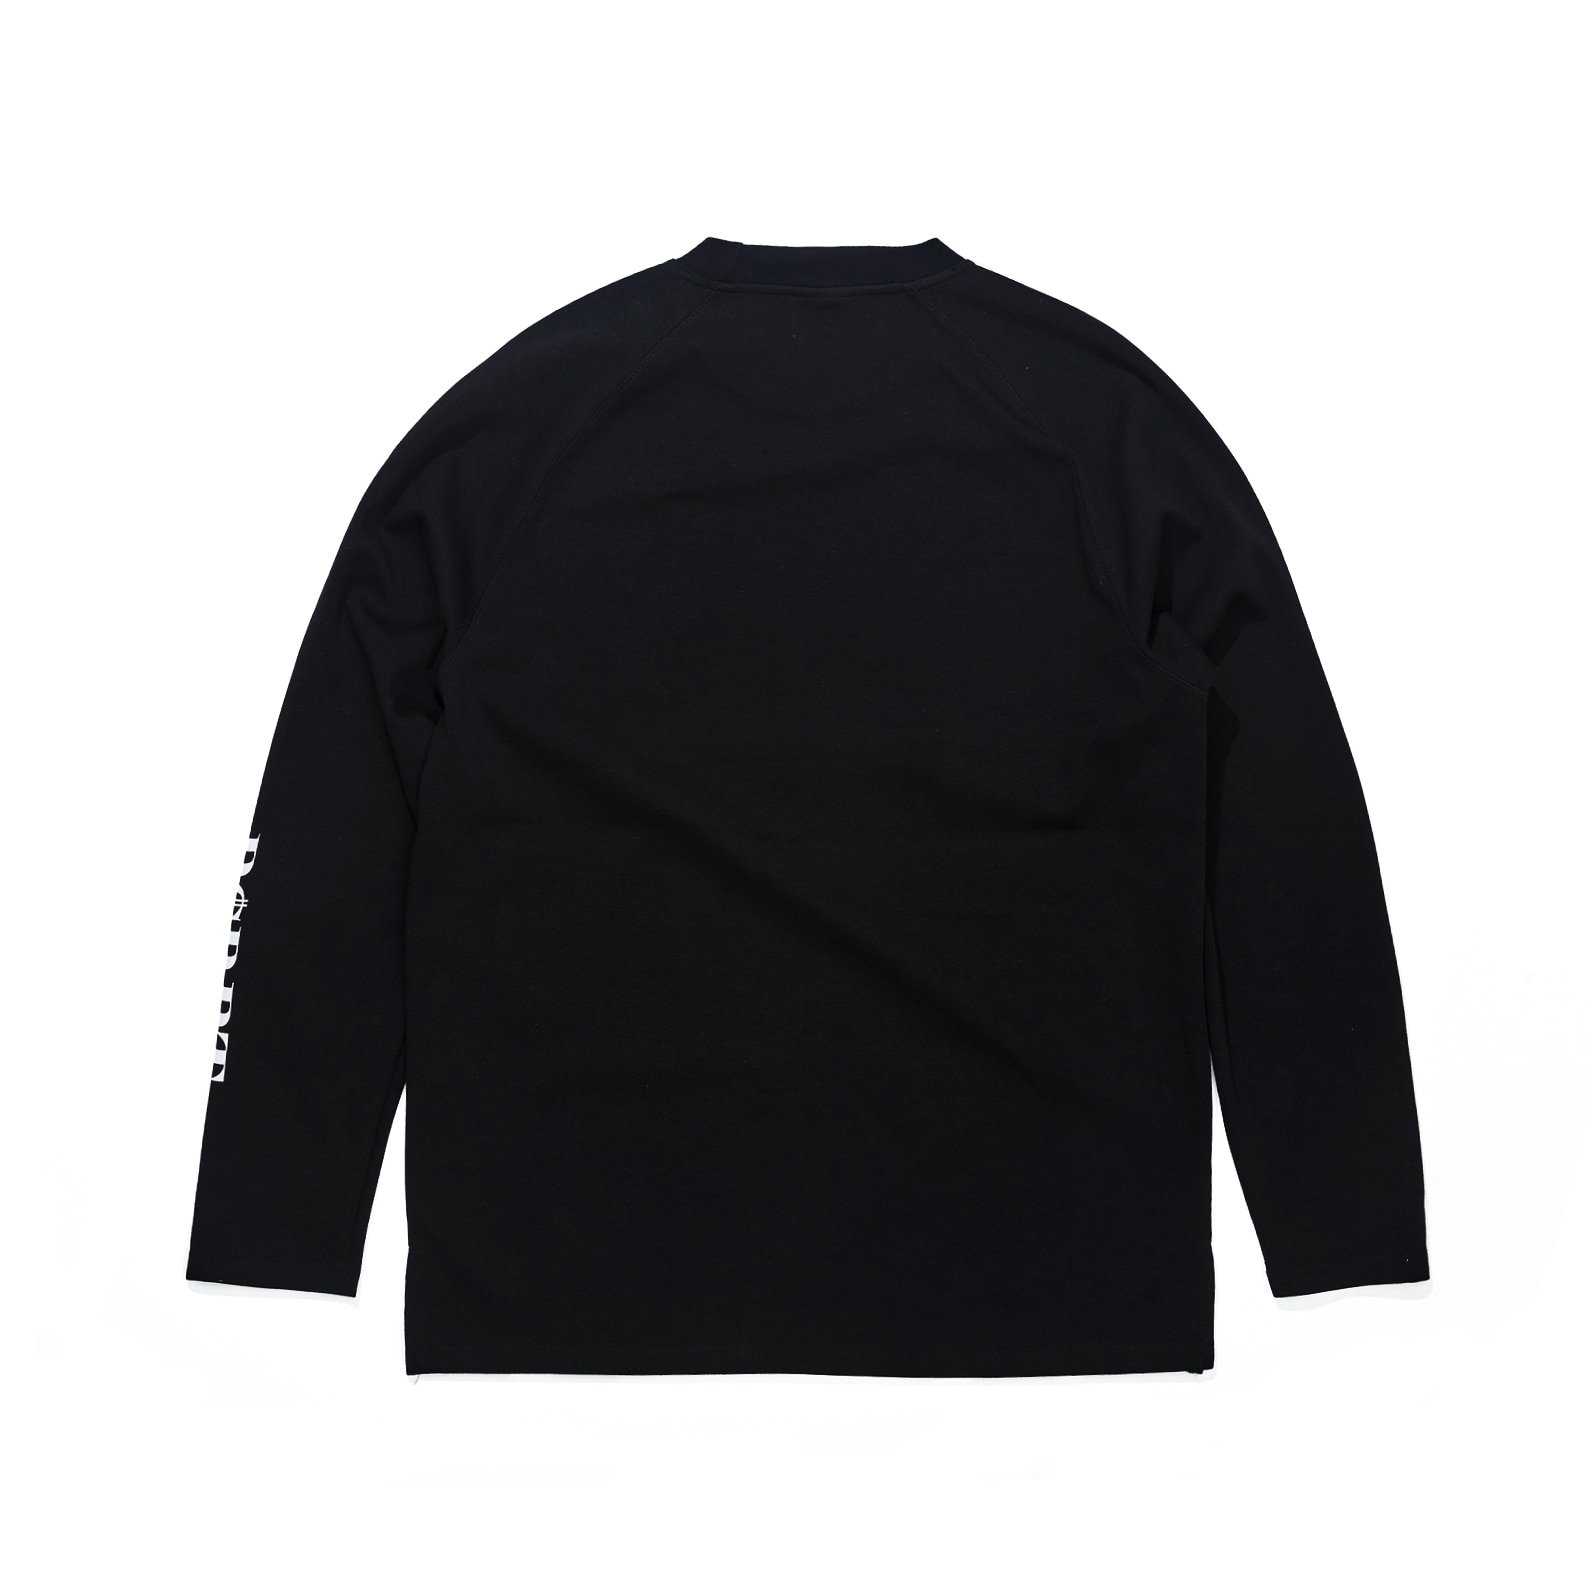 자체브랜드 BSRBT LONG SLEEVE TEE BLACK